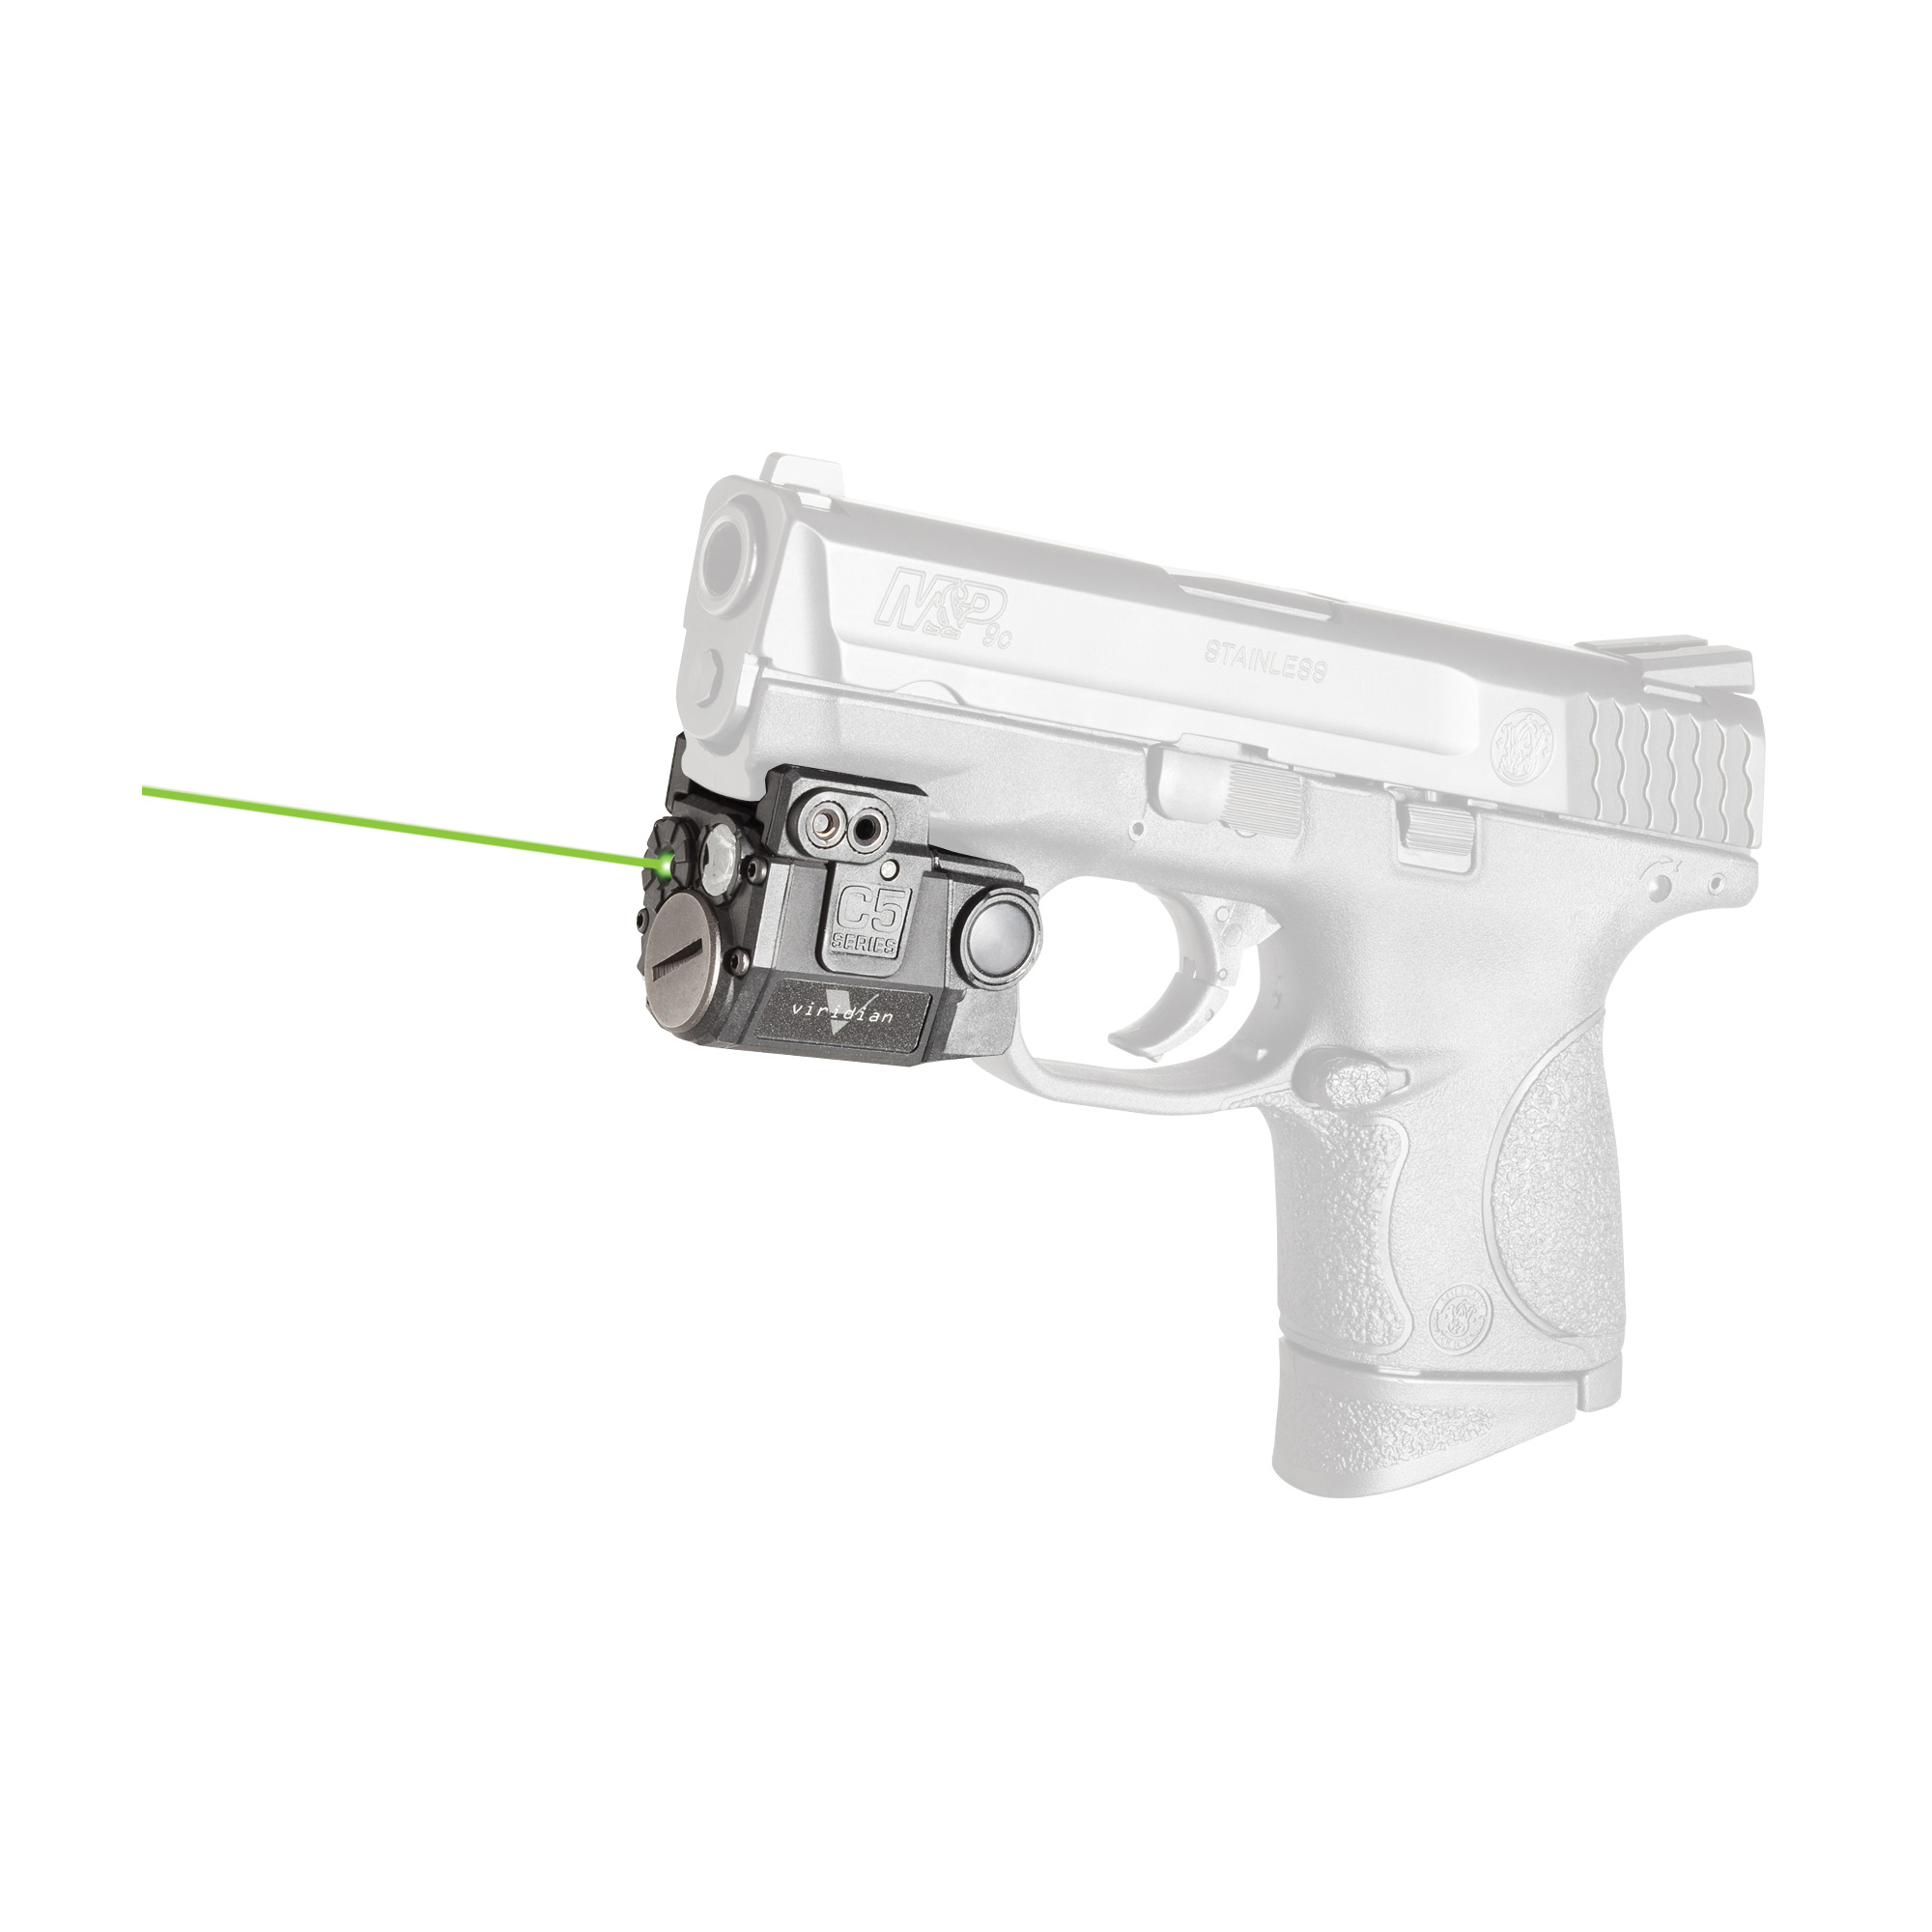 "The Viridian C5L green laser with tactical light is so tiny"" it tucks neatly between trigger guard and muzzle"" with no overhang"" and will work with virtually any railed gun. This C5L features a green laser (50 x brighter than traditional red) that is visible in day or night with multiple modes of operation and easy windage/elevation adjustment. Viridian's C5L is equipped with INSTANT-ON(R) activation. When paired with a TacLoc holster (sold separately)"" you can ignite your green laser and tactical light instantly when you draw your weapon. When you draw it's on. The C5L features a 100 lumen tactical light with CREE LED in constant and strobe modes. It comes standard with RADIANCE(R) taclight technology"" which expands light into a wider beam"" revealing over twice the horizontal area of conventional tactical lights. With no wasted light above or below your target area"" you get a better picture"" faster discovery"" smoother tracking and more positive targeting than any other weapon-mounted tool."